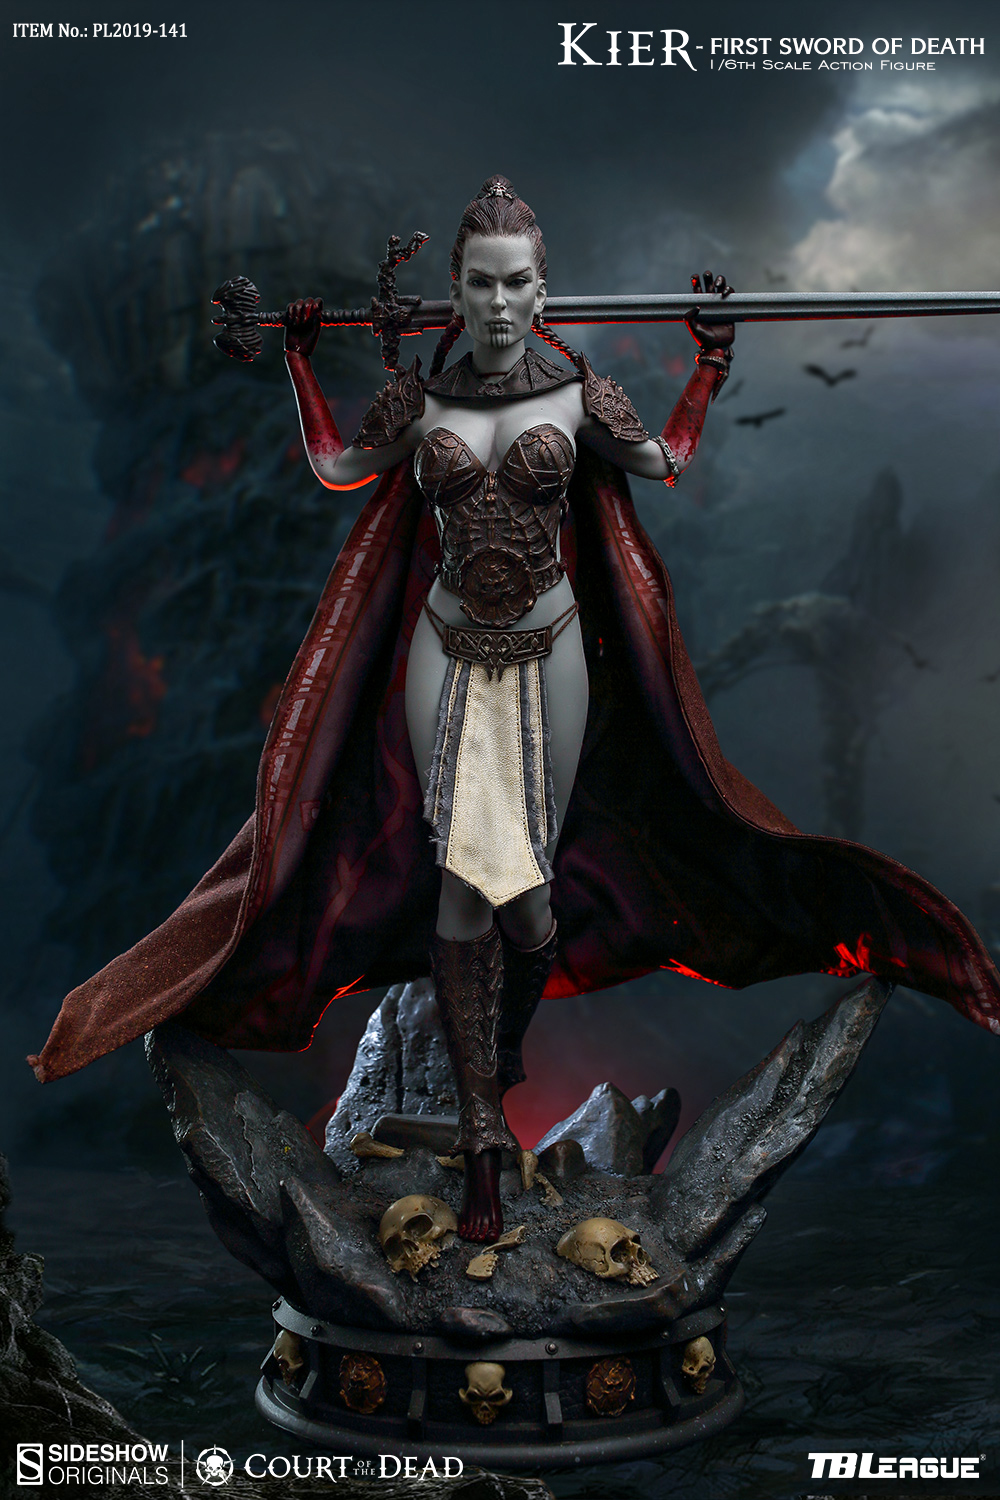 horror - NEW PRODUCT: TBLeague & Sideshow: 1/6 Court of the Dead - Valkyrie Cole / Kier movable doll (PL2019-141) 16260410